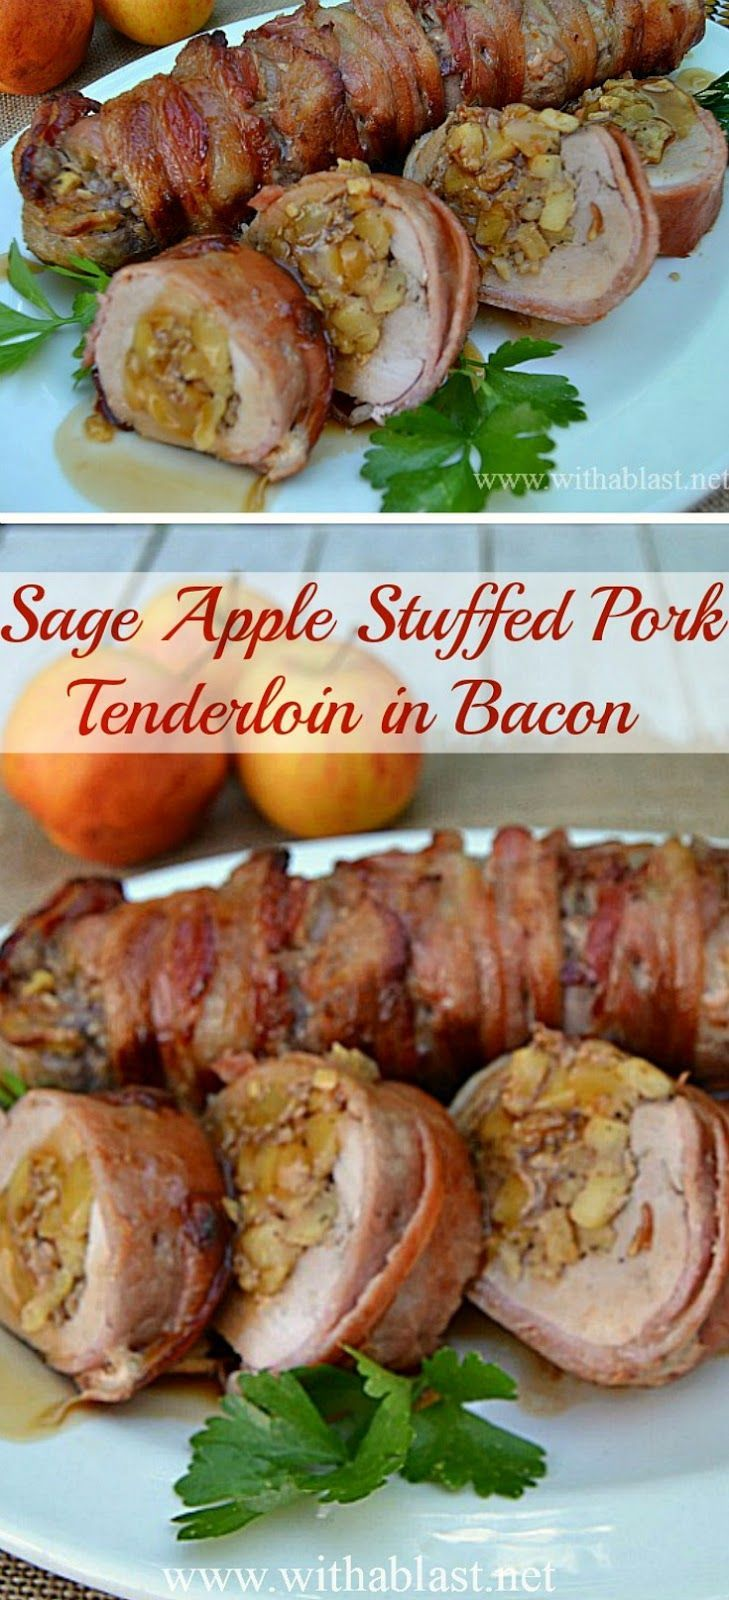 Only 7 Ingredients in this Sage Apple Stuffed Pork Tenderloin in Bacon  ! Juicy, tender and bursting with flavor ~ and the BEST part = all wrapped in Bacon !